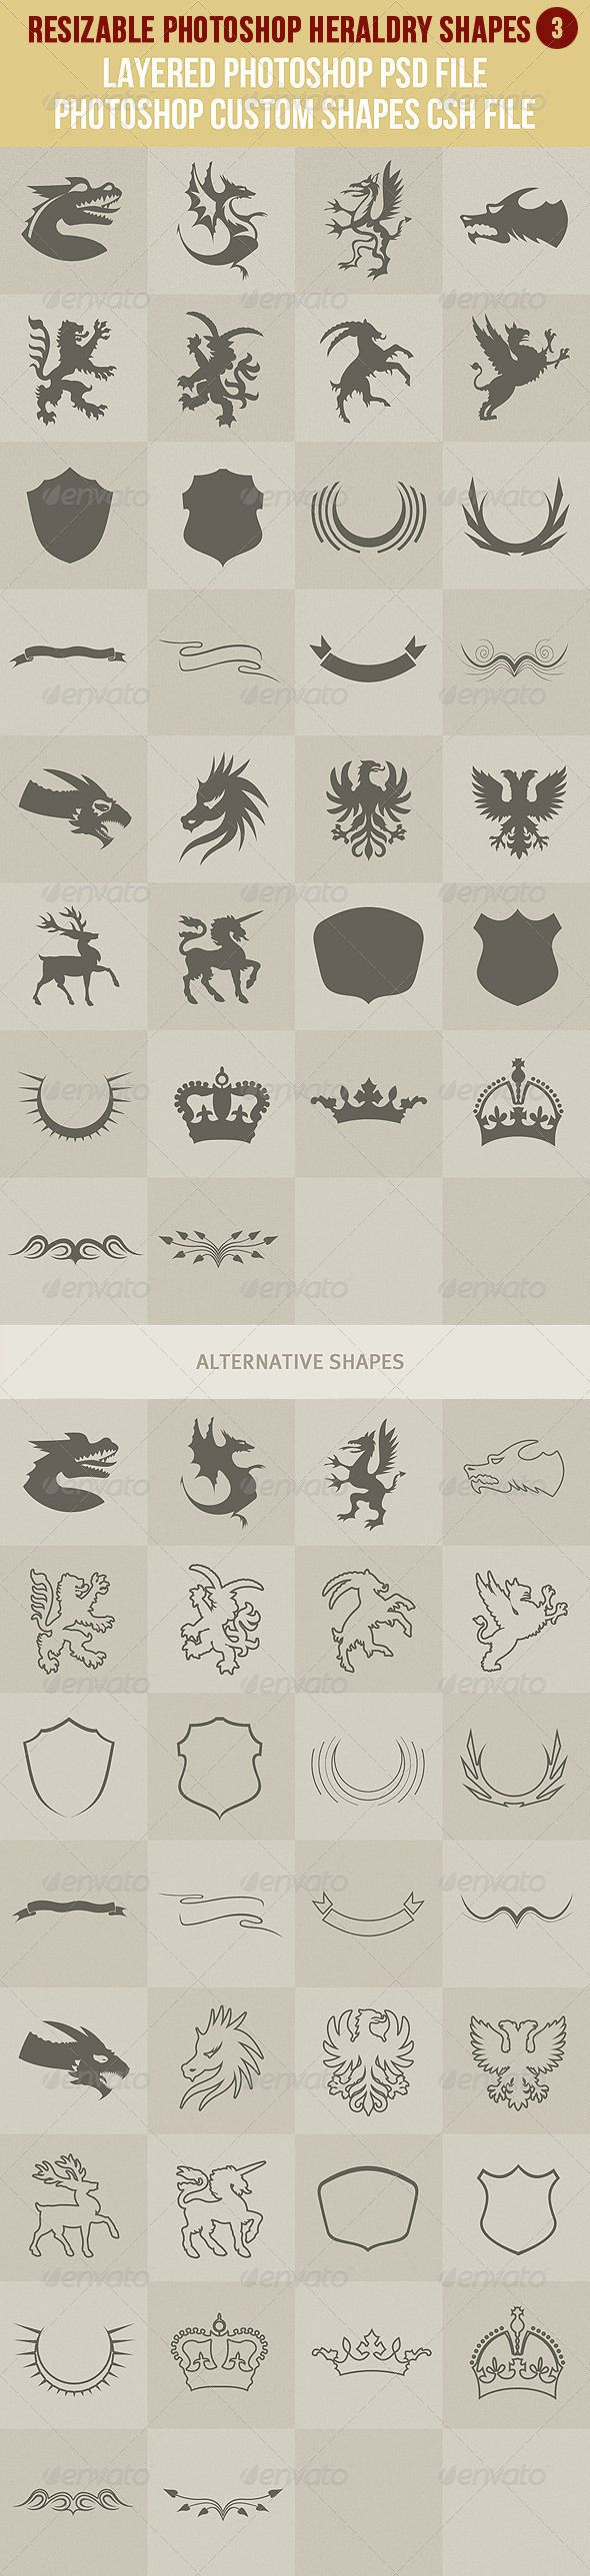 Photoshop Heraldry Shapes 3 - http://graphicriver.net/item/photoshop-heraldry-shapes-3/2856792?ref=cruzine